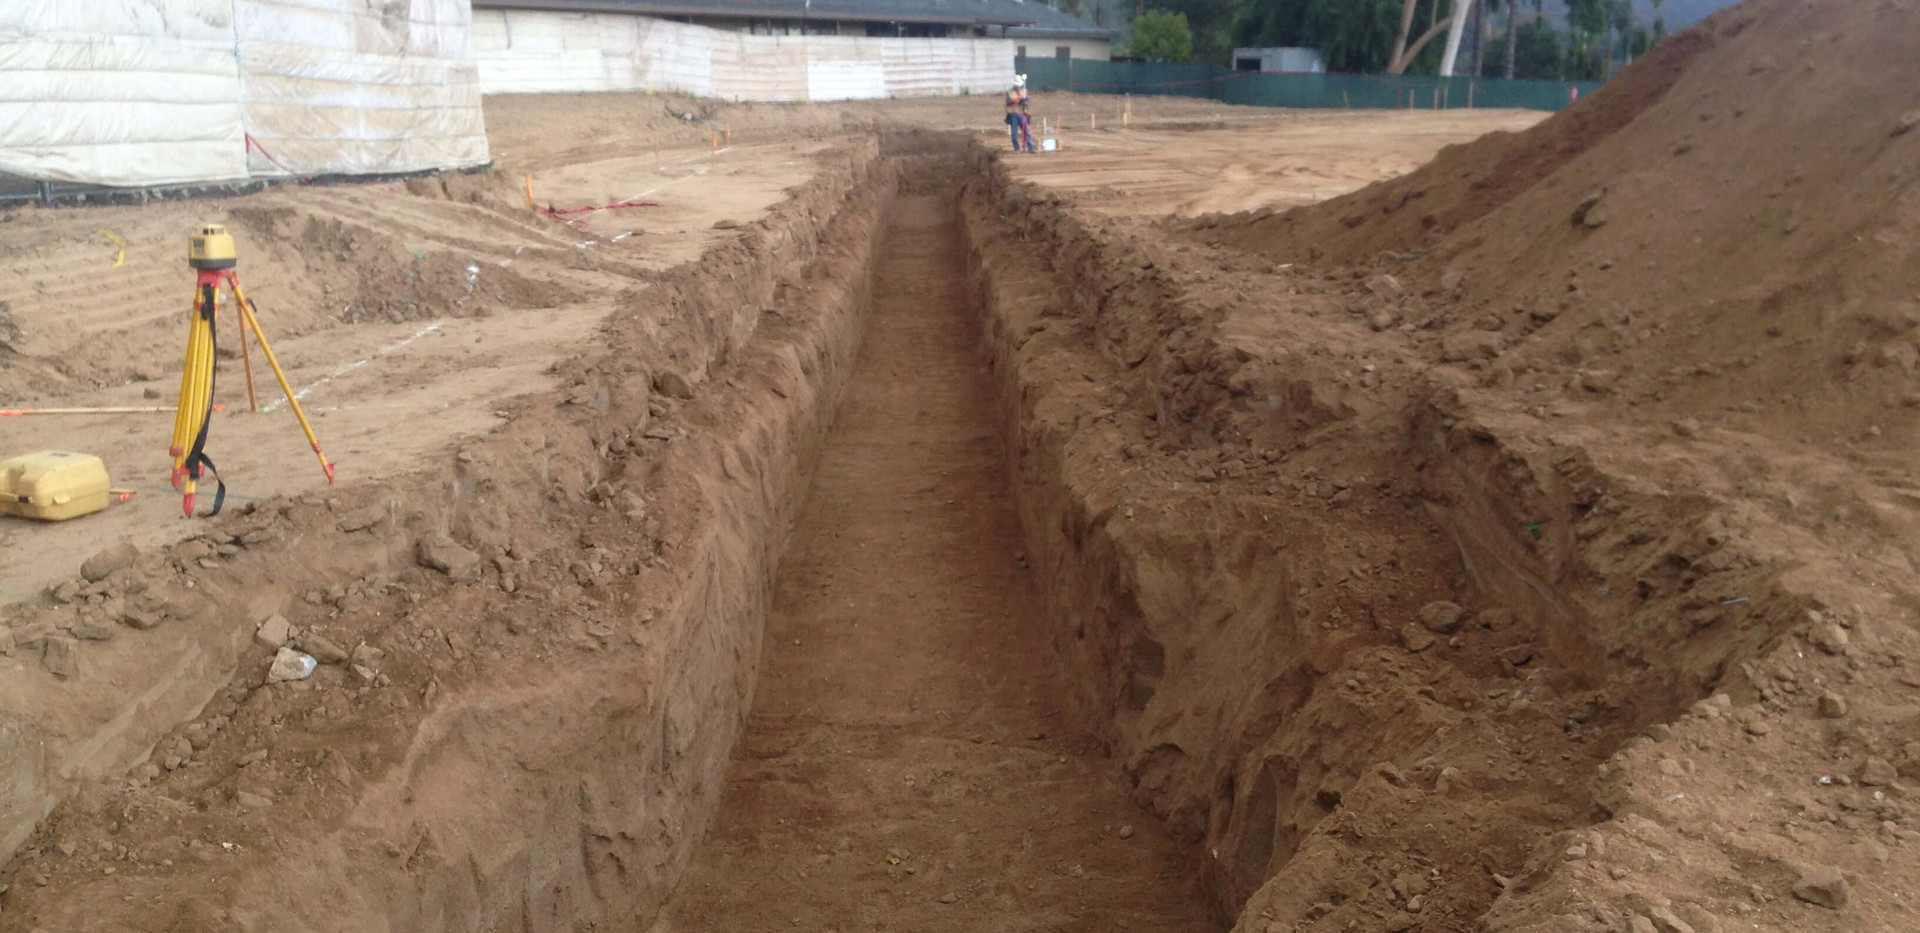 hydronic-trench-excavation.jpg